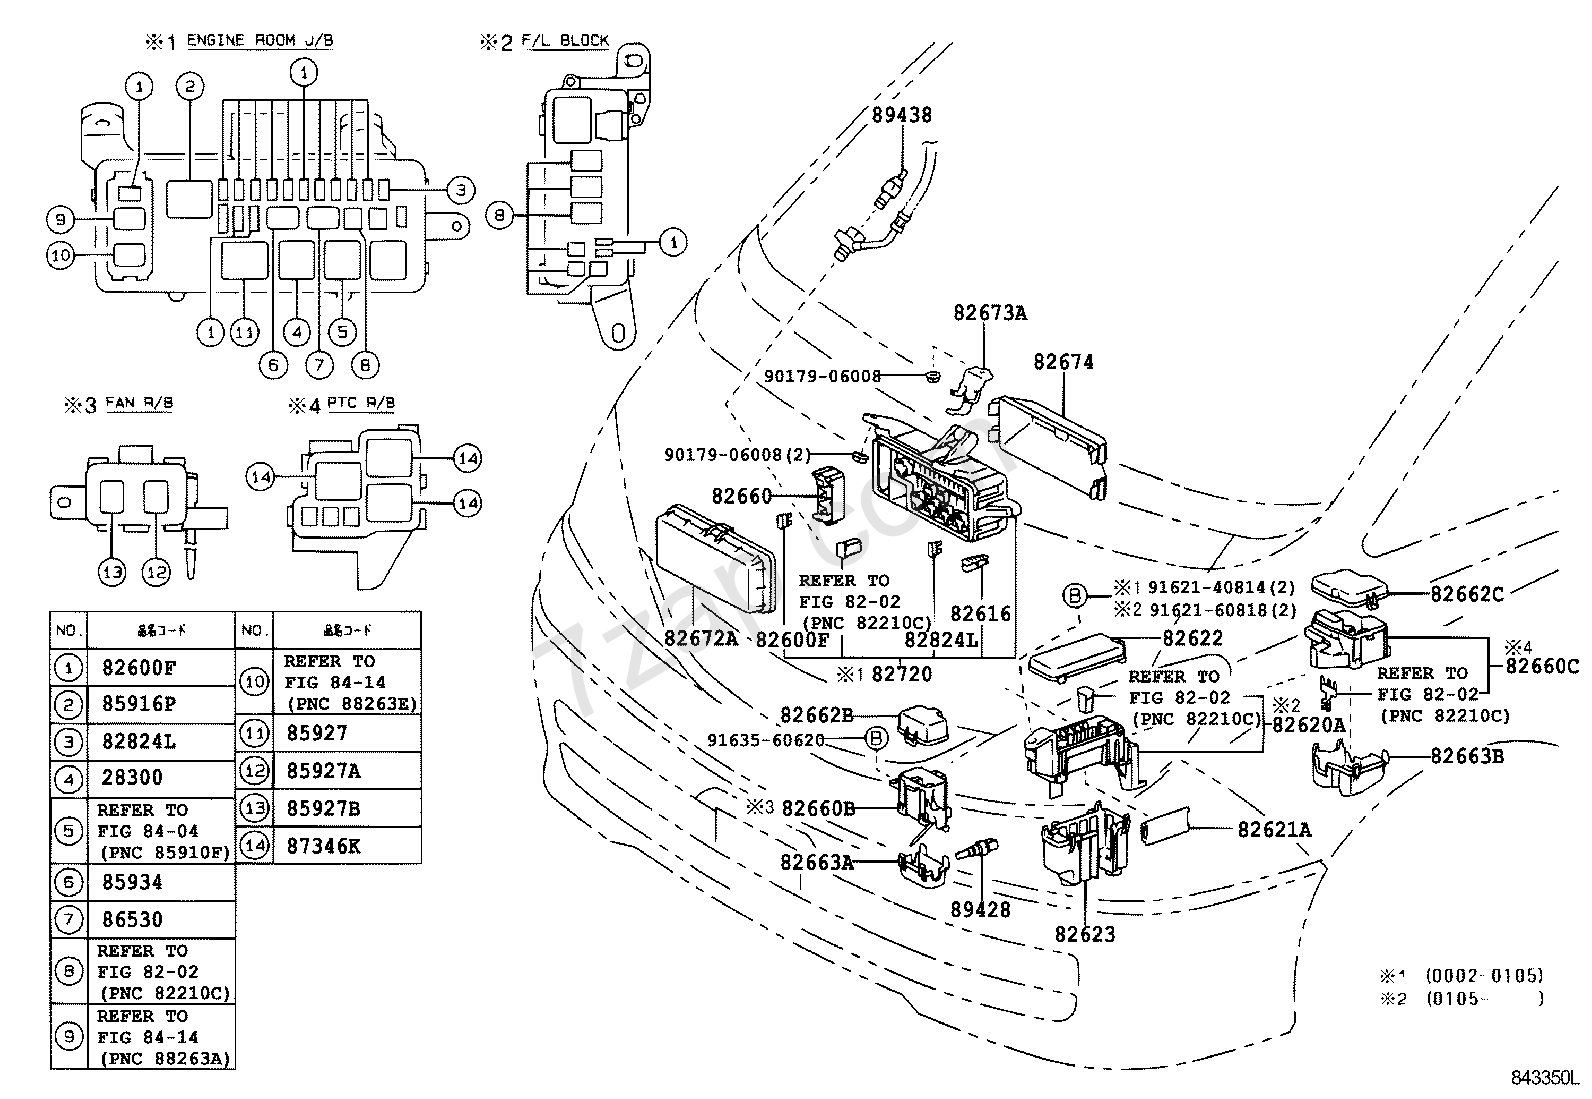 Toyota Estima Fuse Box Layout In English Explained Wiring Diagrams Previa Diagram Trusted U2022